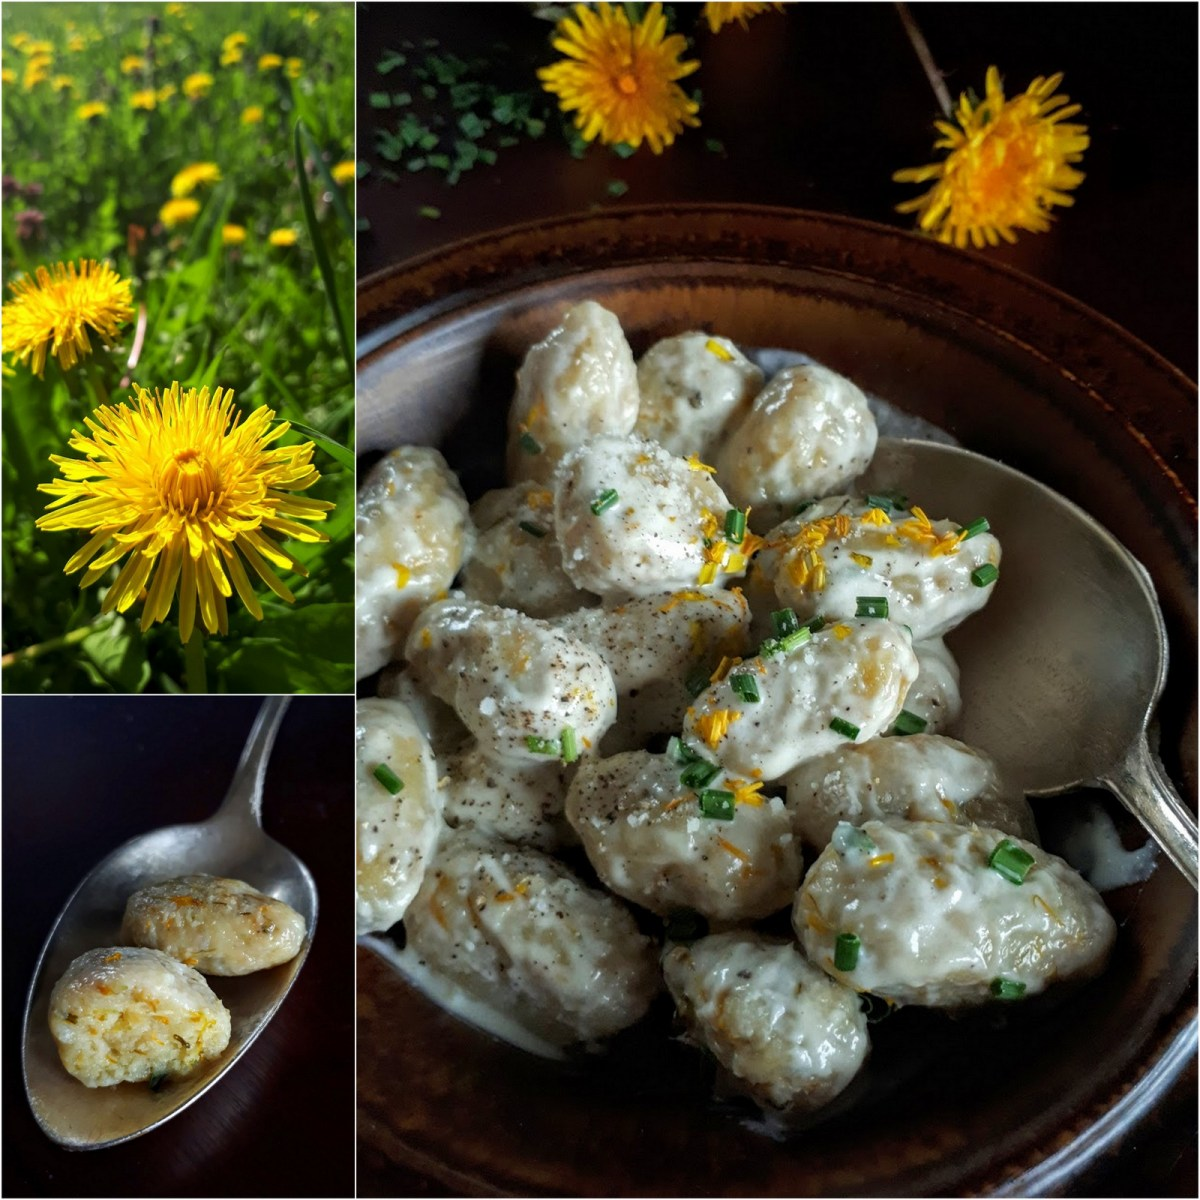 Dandelion Blossom Gnocchi: Golden Dumplings in Garlic Cream Sauce